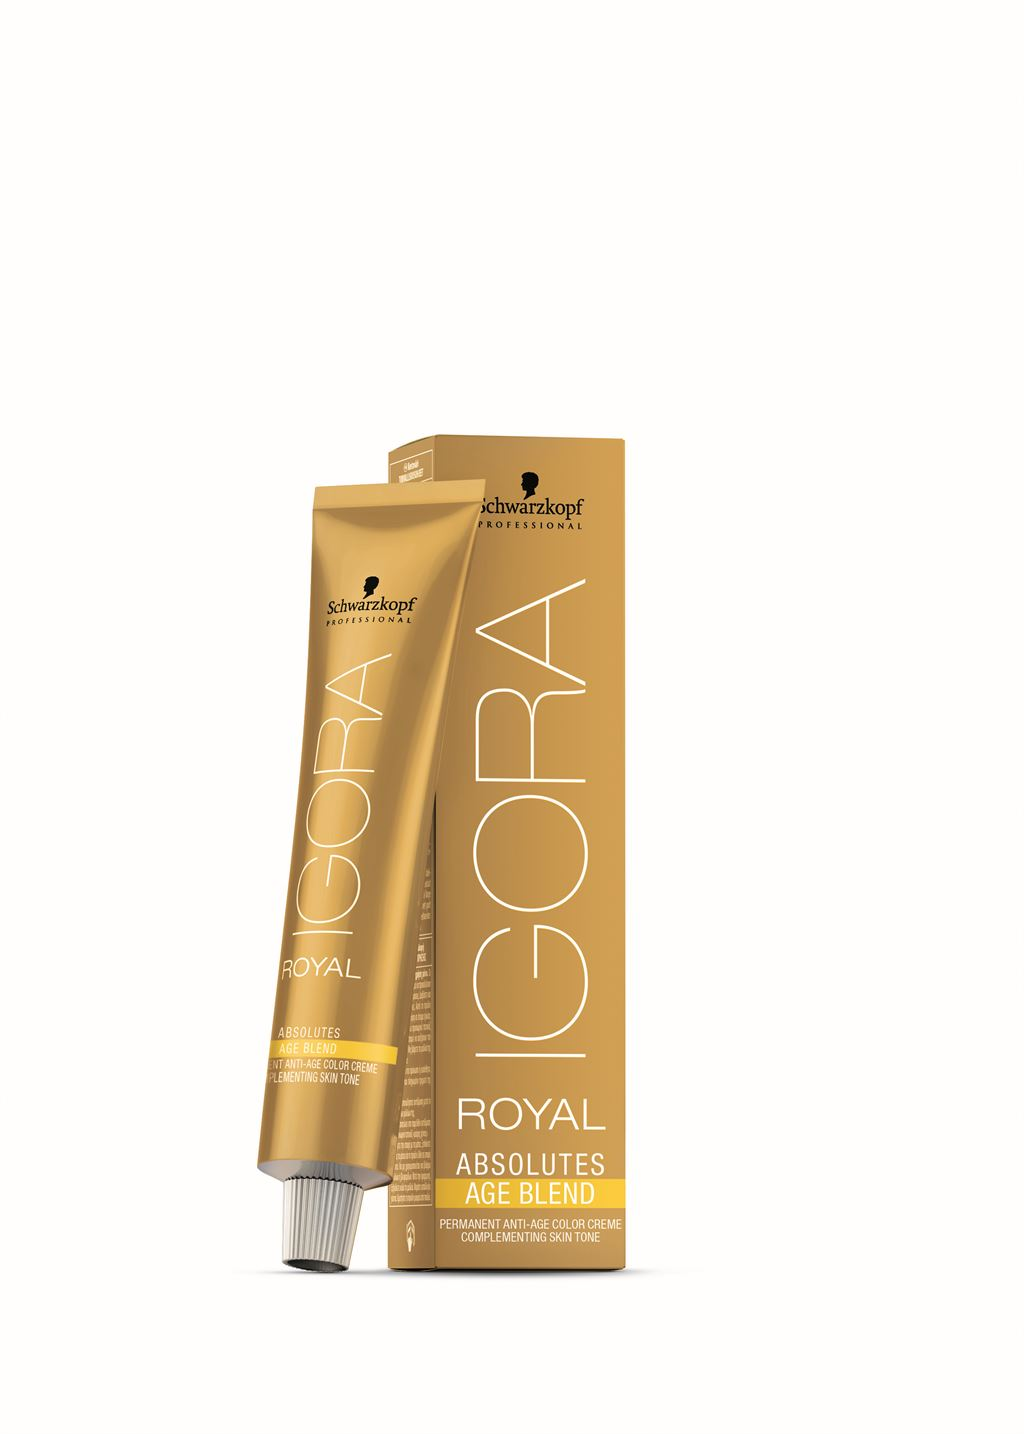 IGORA Royal Absolutes AgeBlend Tube and Box